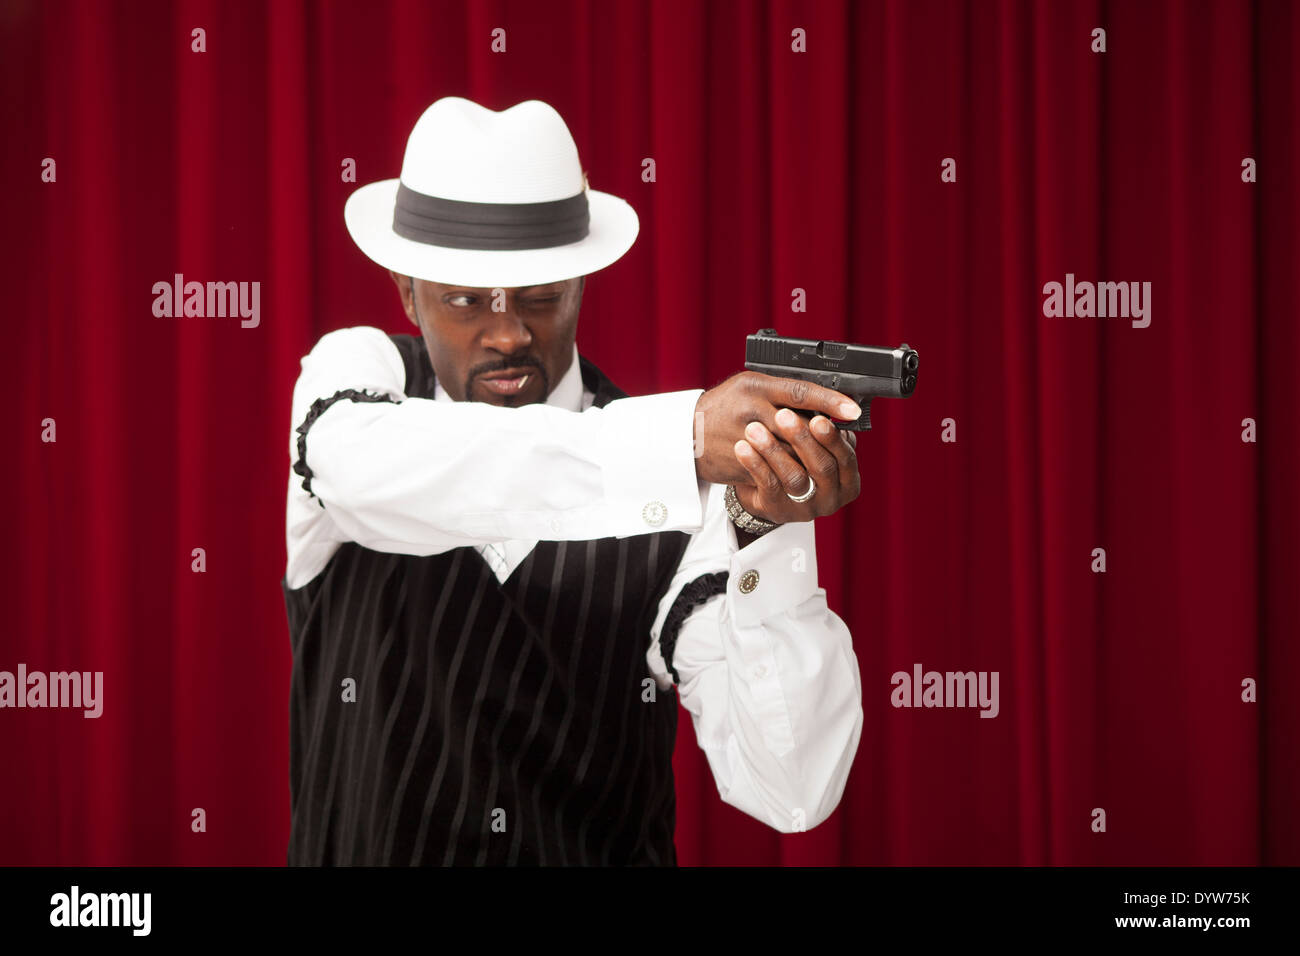 well dressed gambler in a retro suit pointing a gun - Stock Image